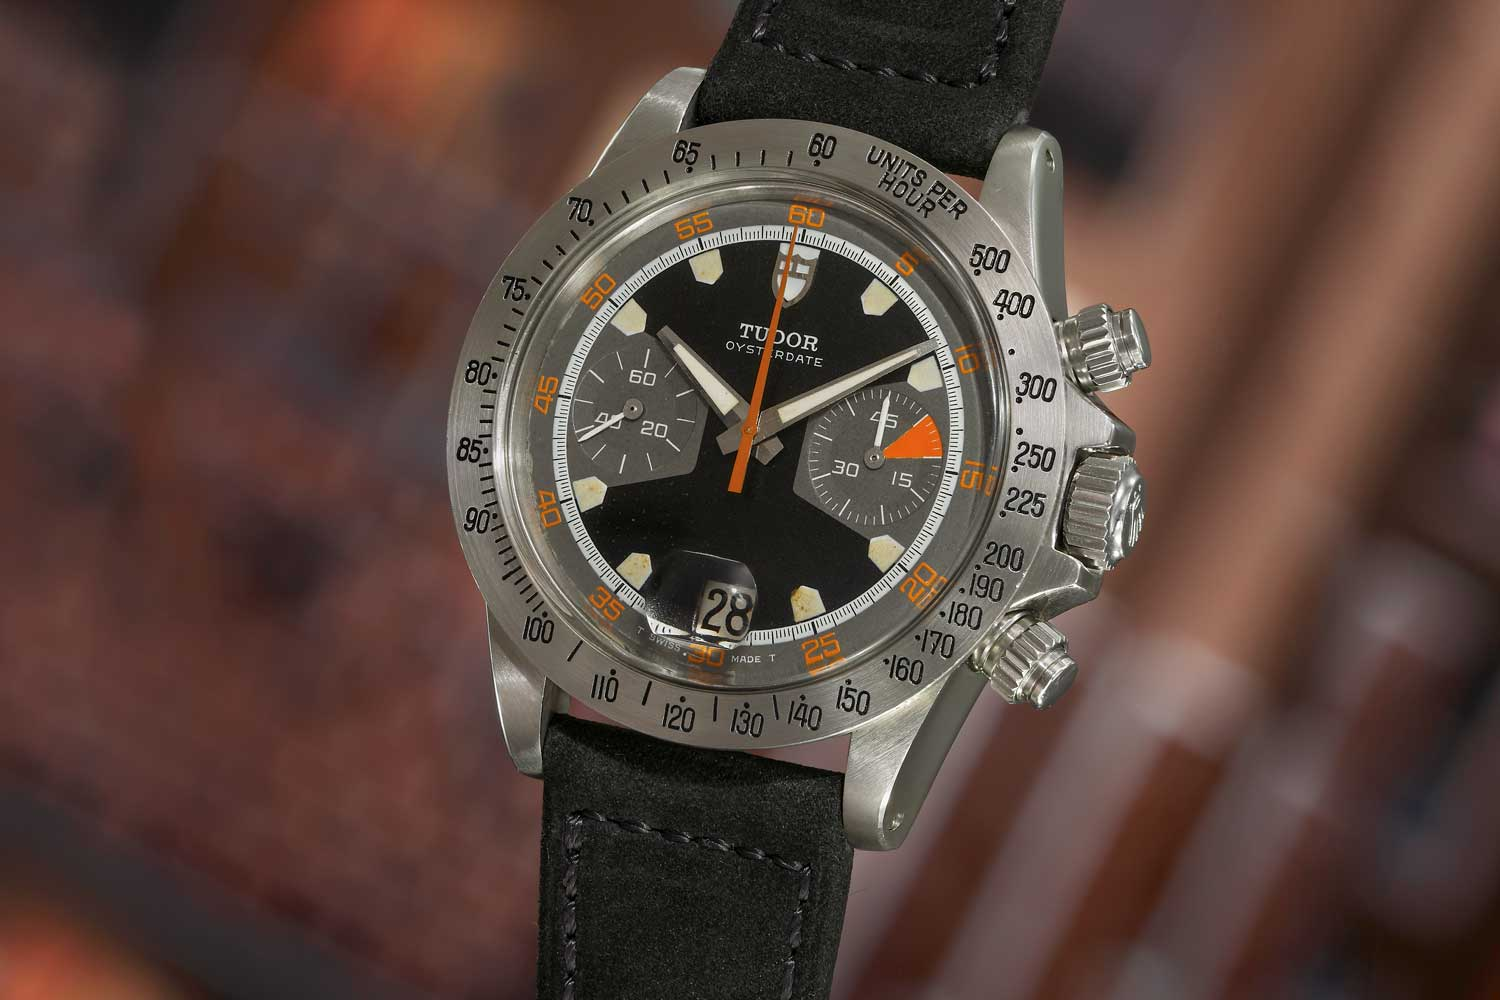 Tudor unveiled the 7000-series watch with the references 7031 and 7032 in 1970. Seen here is the ref. 7032 with black dial (Image: Phillips.com)